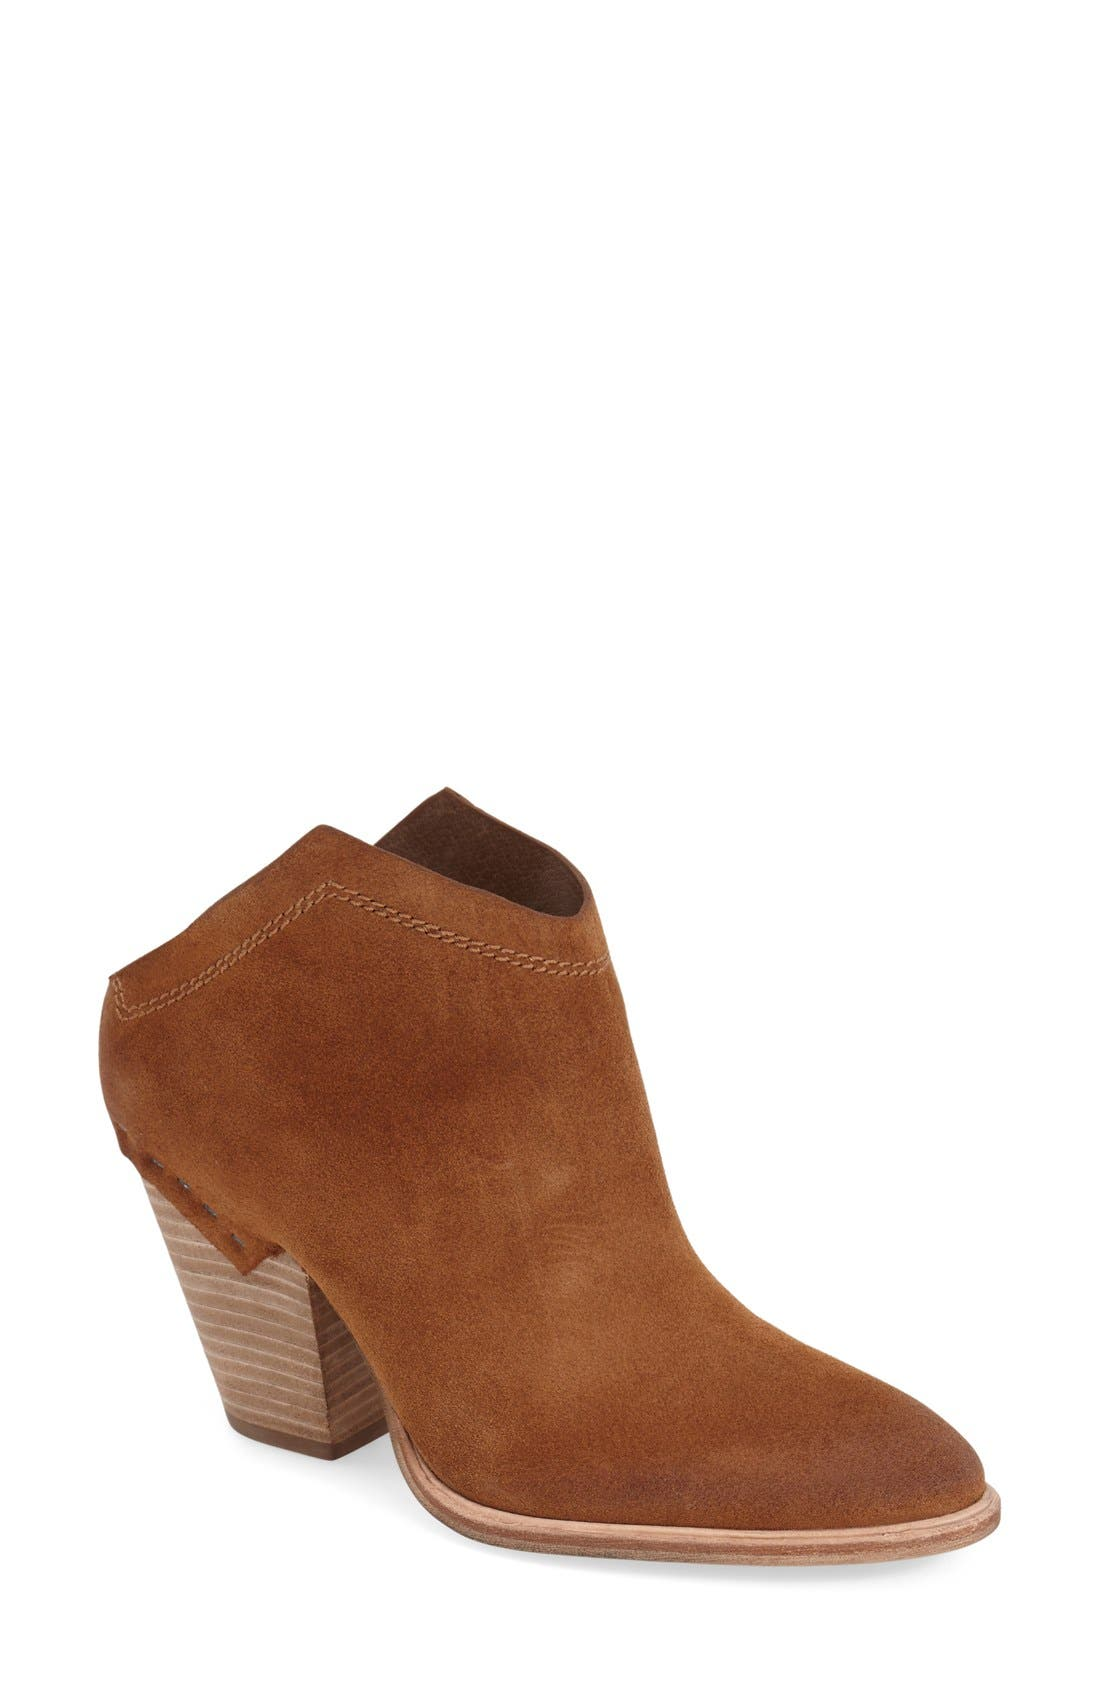 Alternate Image 1 Selected - Dolce Vita 'Haku' Ankle Bootie (Women)